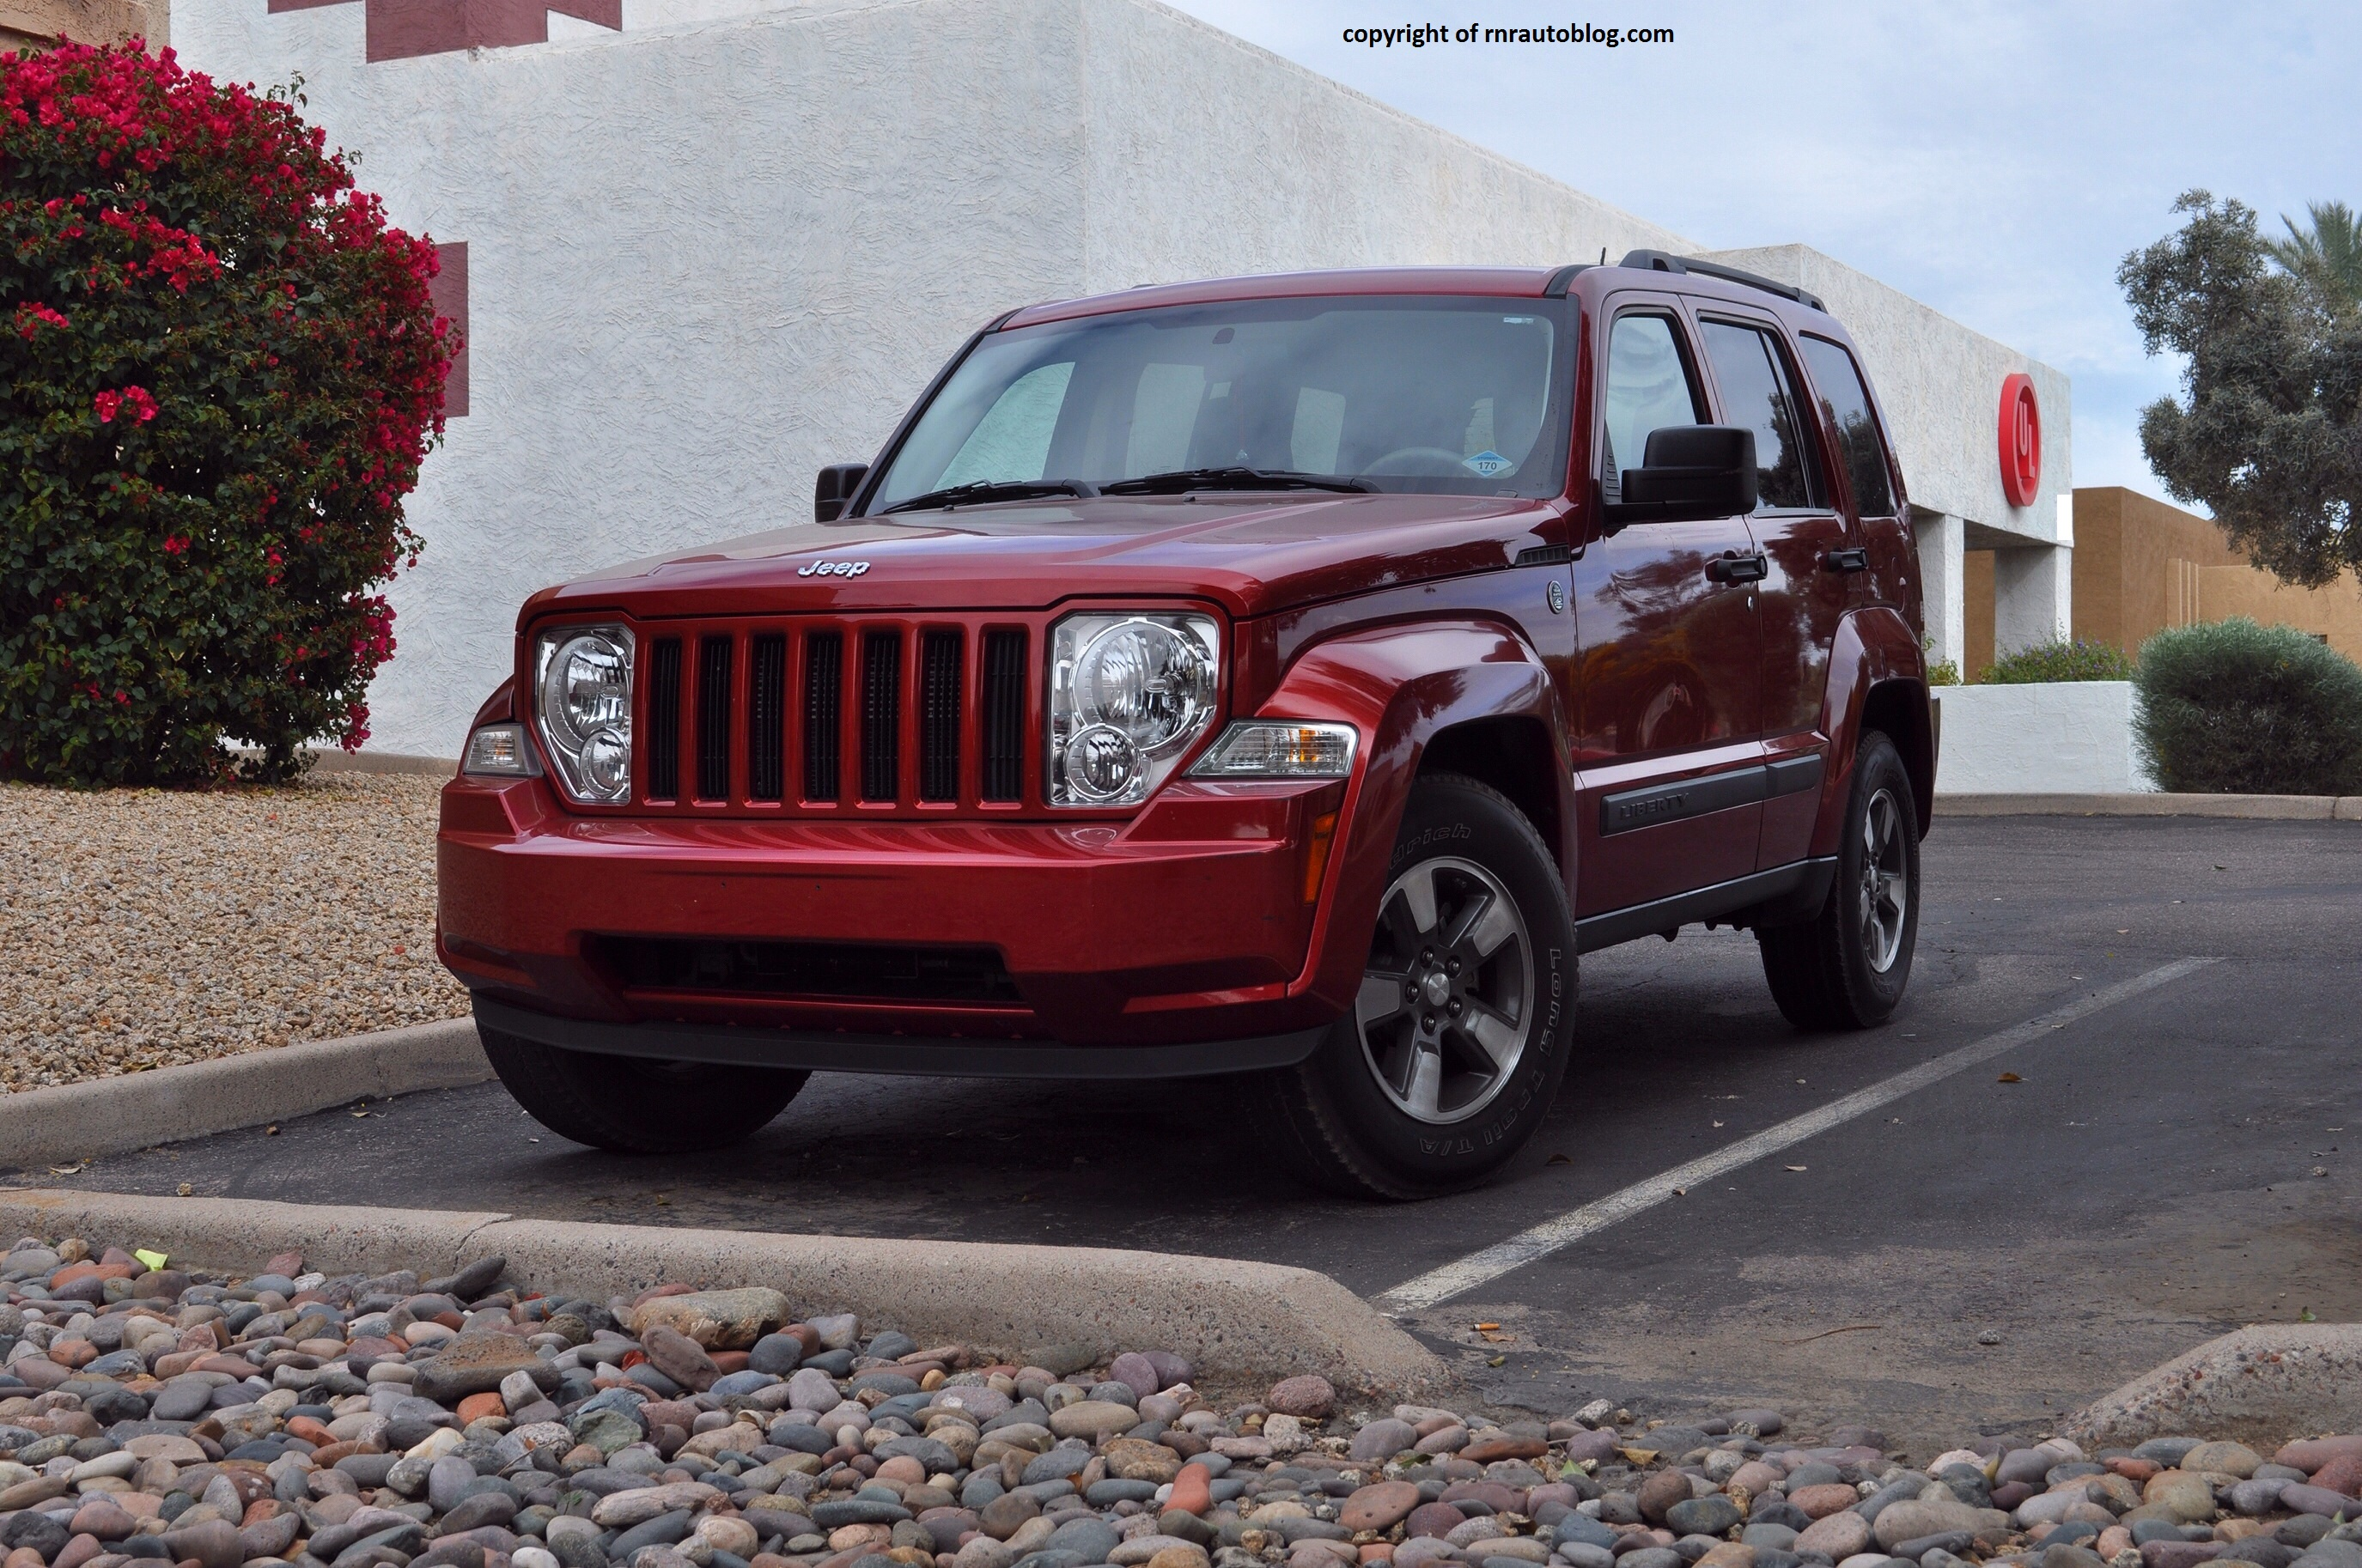 2008 Jeep Liberty Sport Teaser · Liberty1. Review Coming Soon!